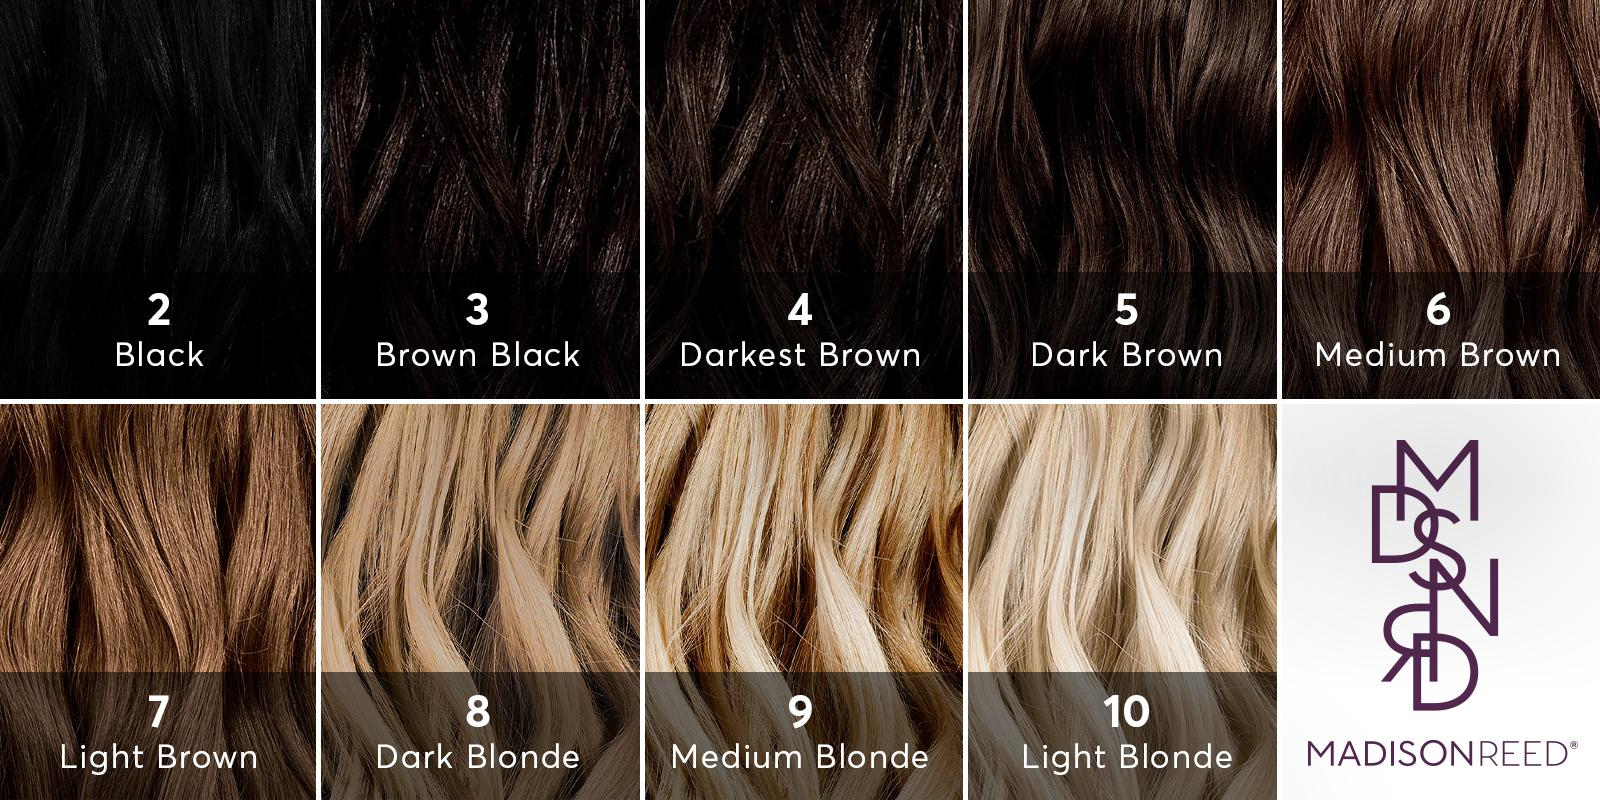 Hair Color Level Chart_ Madison Reed